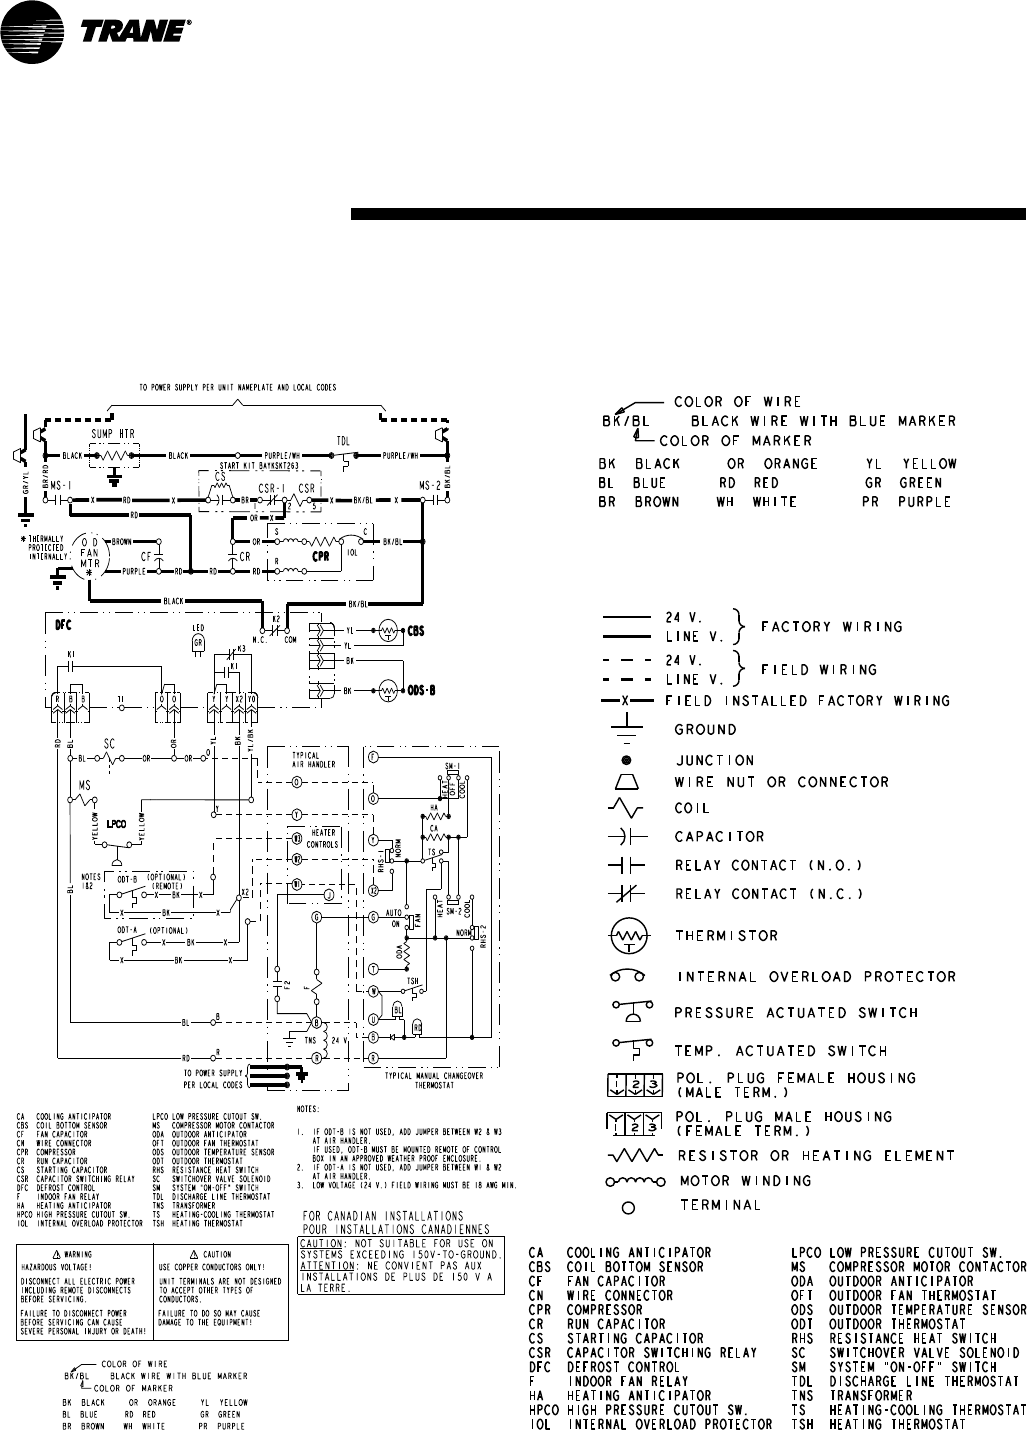 eeff7b43 cd50 49bc a0c8 e5716b4baaba bg8 trane wsc060 wiring diagram on trane images free download wiring trane wsc060 wiring diagrams at gsmportal.co